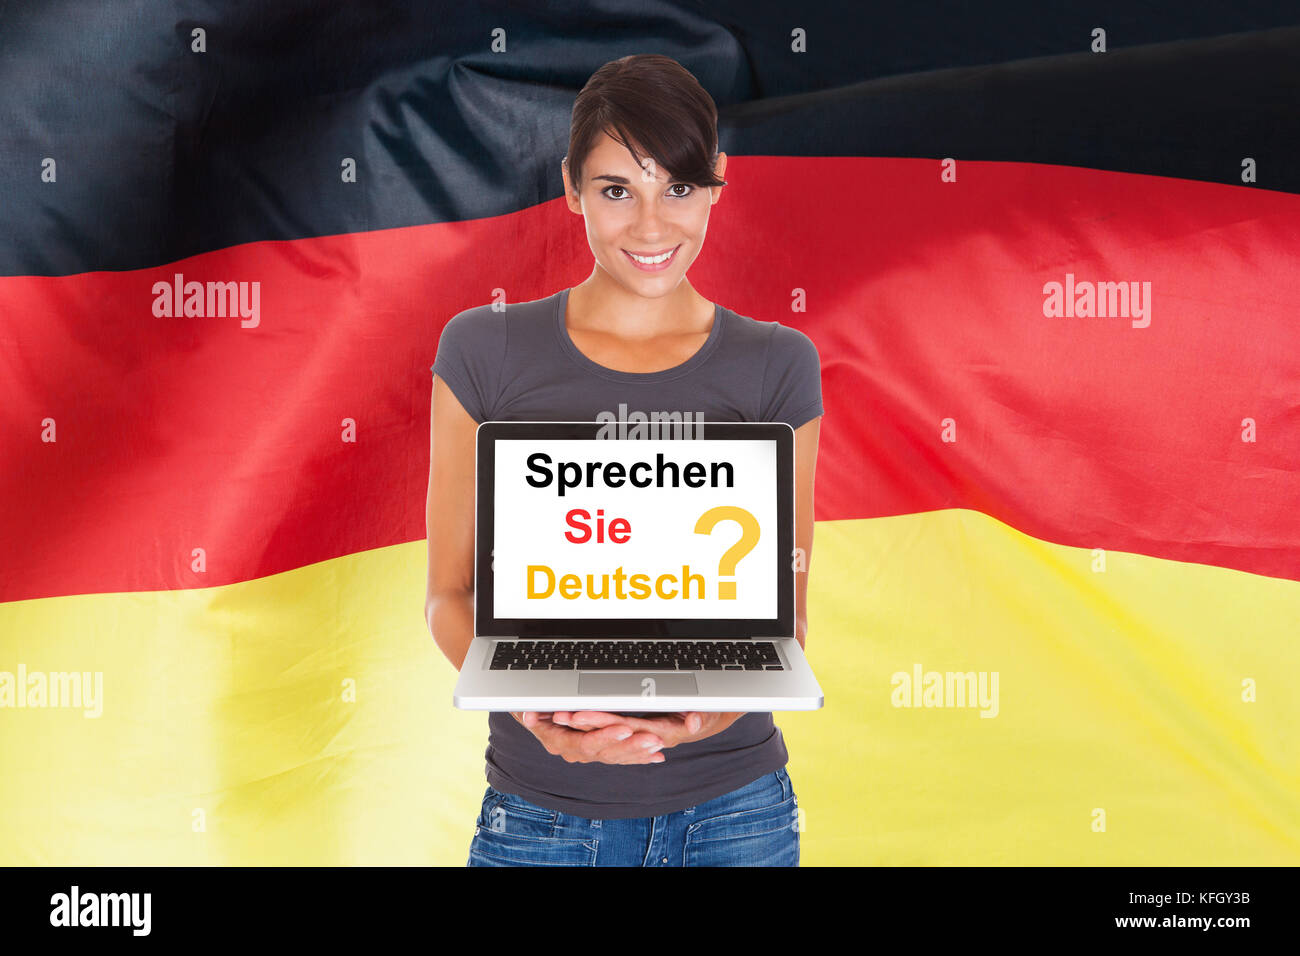 Young Woman Holding Laptop Asking Do You Speak German - Stock Image